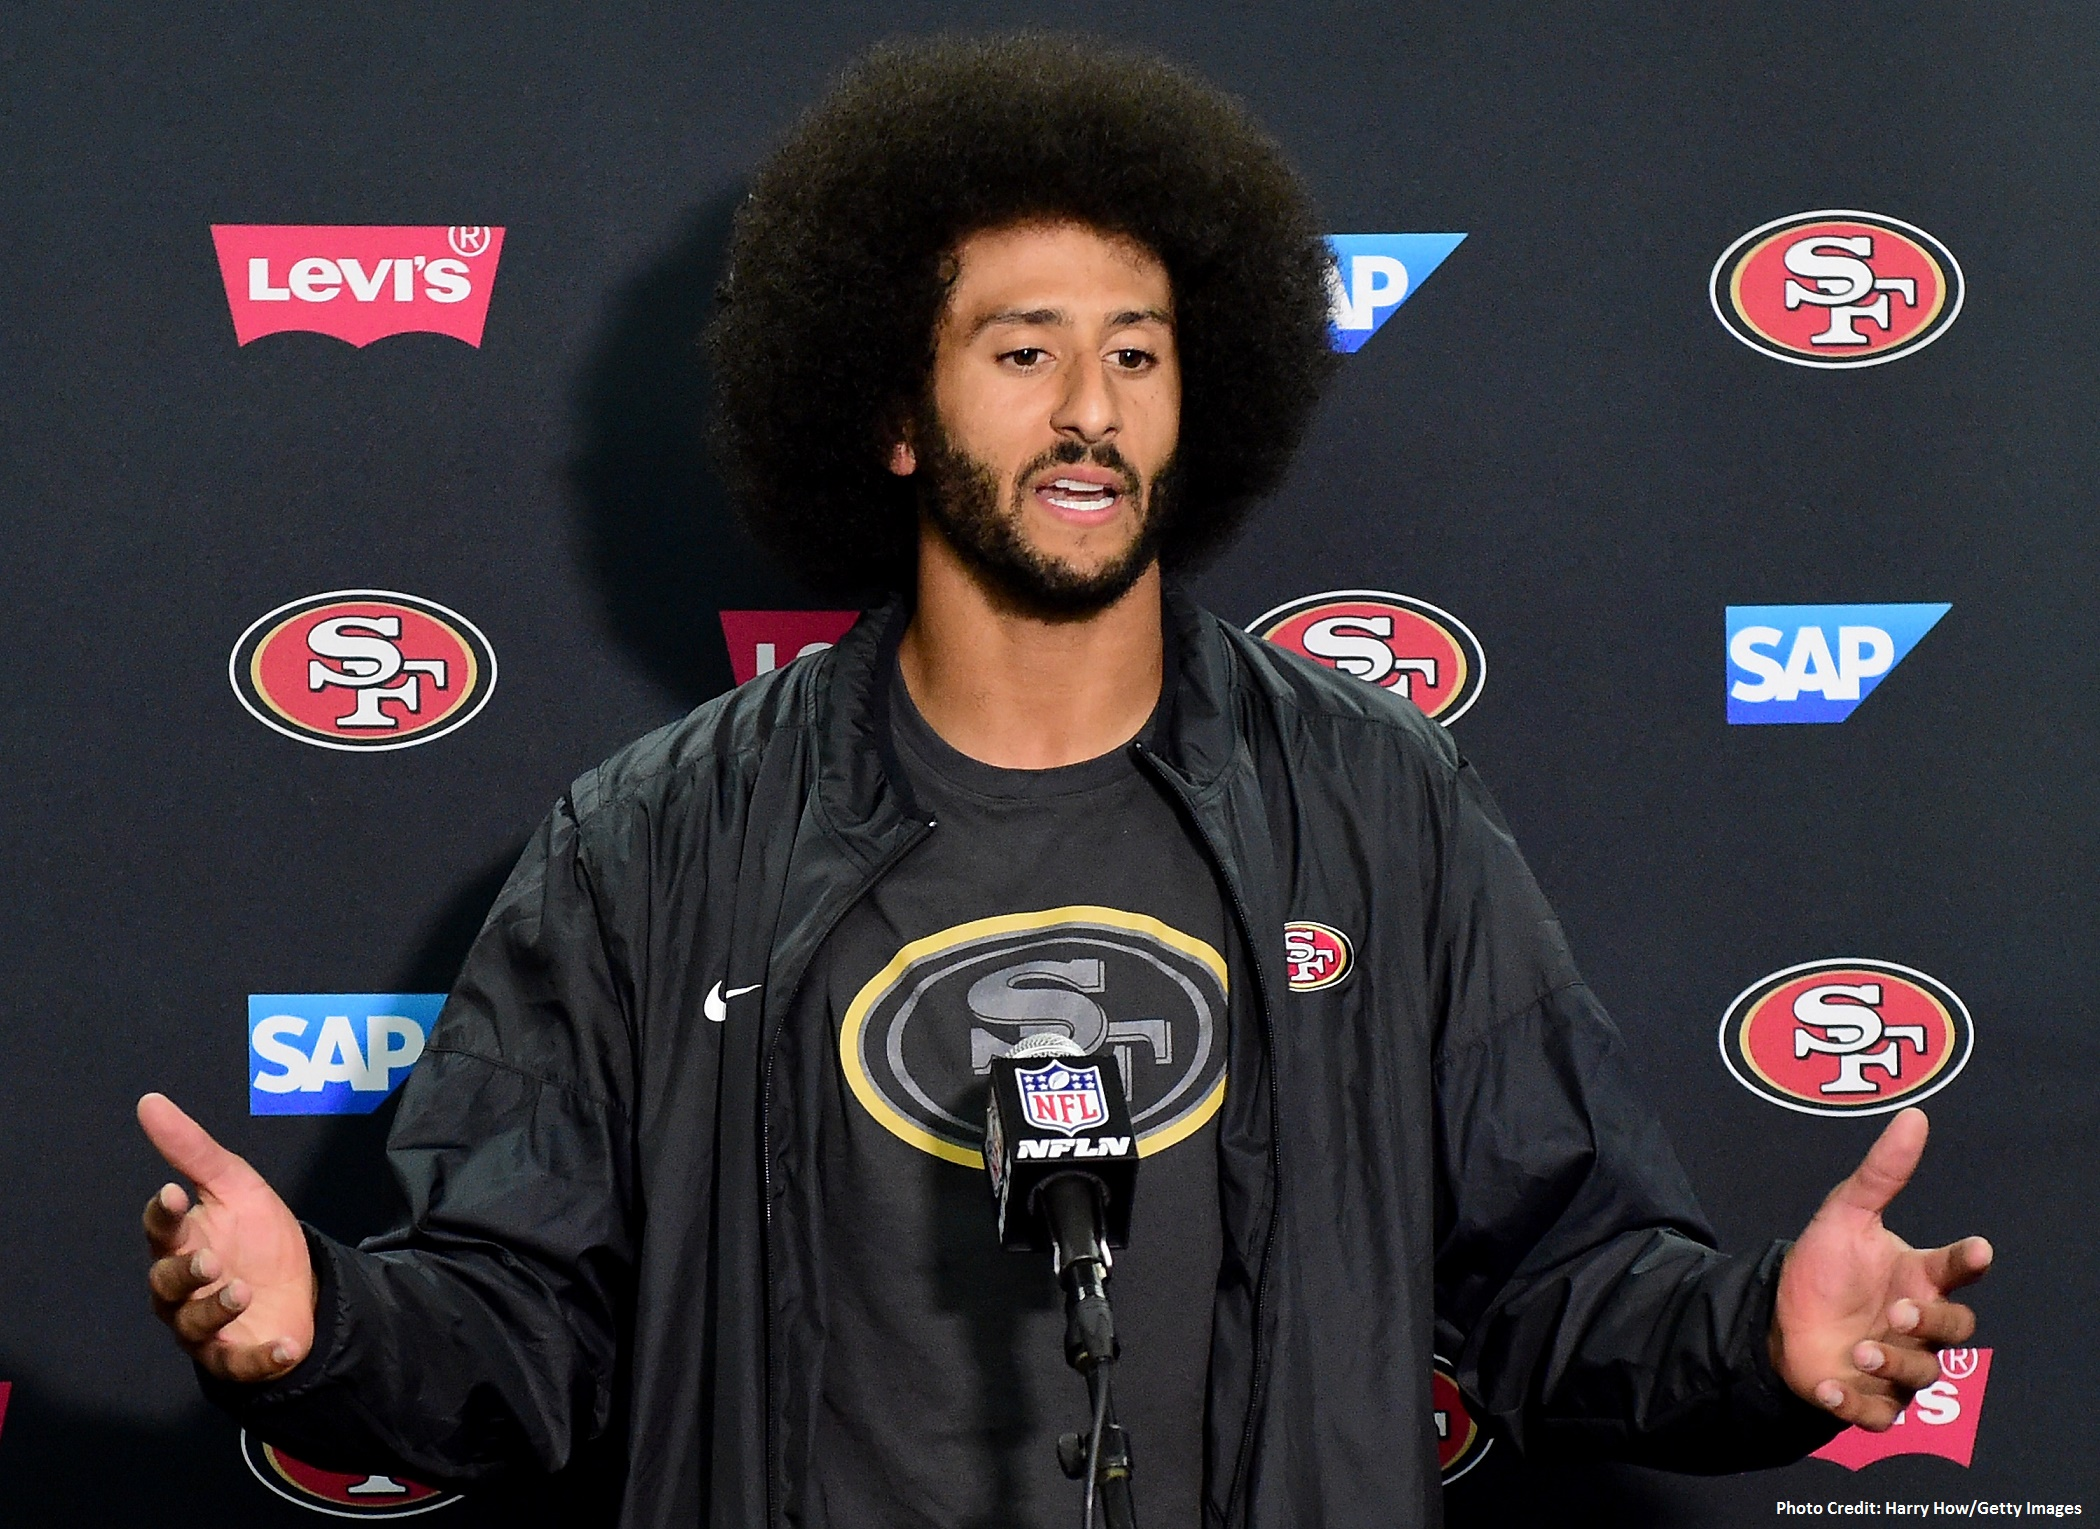 Colin Kaepernick on Terence Crutcher, Death Threats, and Donations